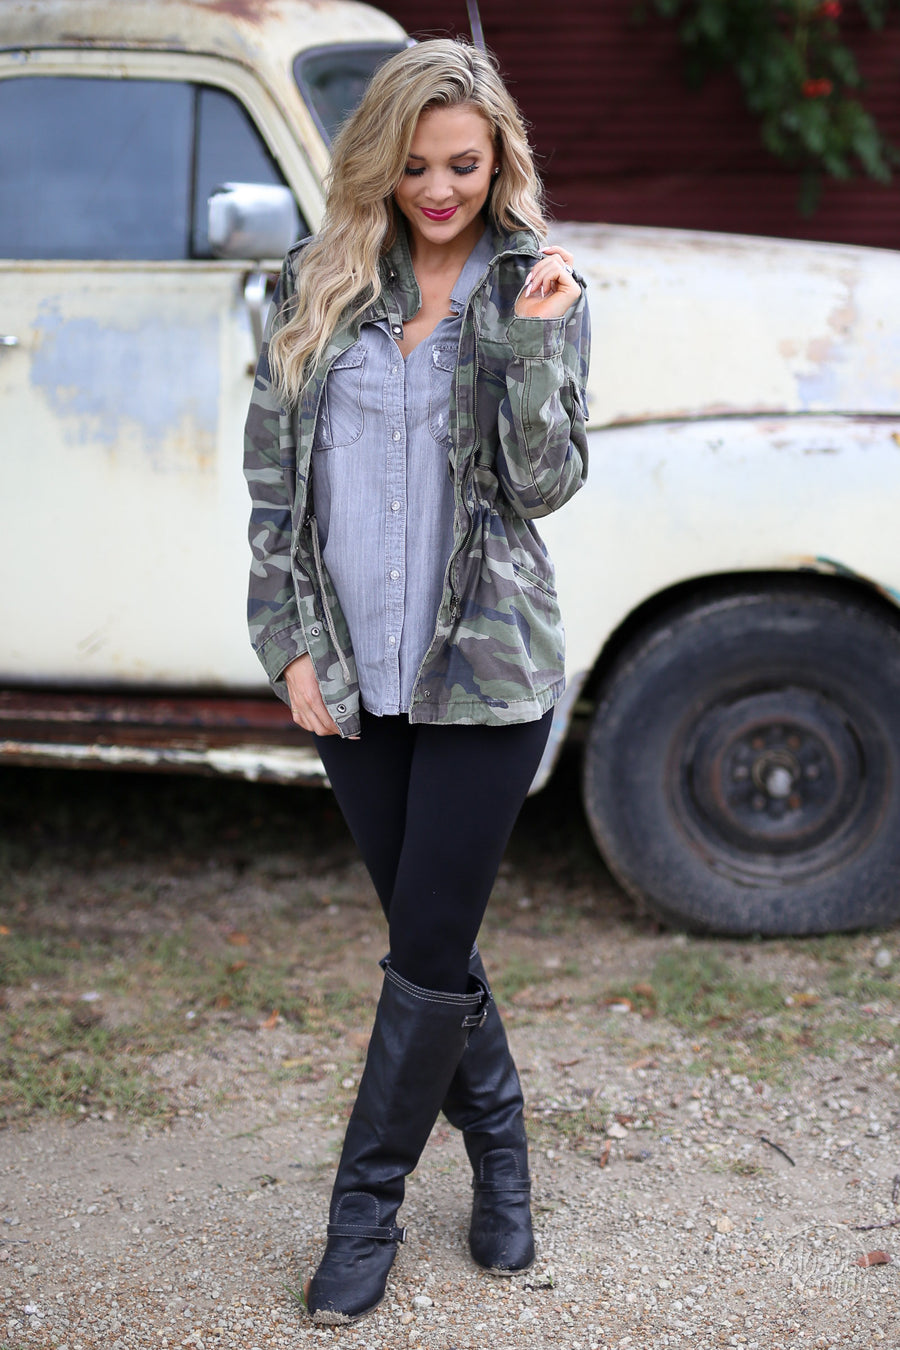 Can't Conceal Beauty Jacket - Camo